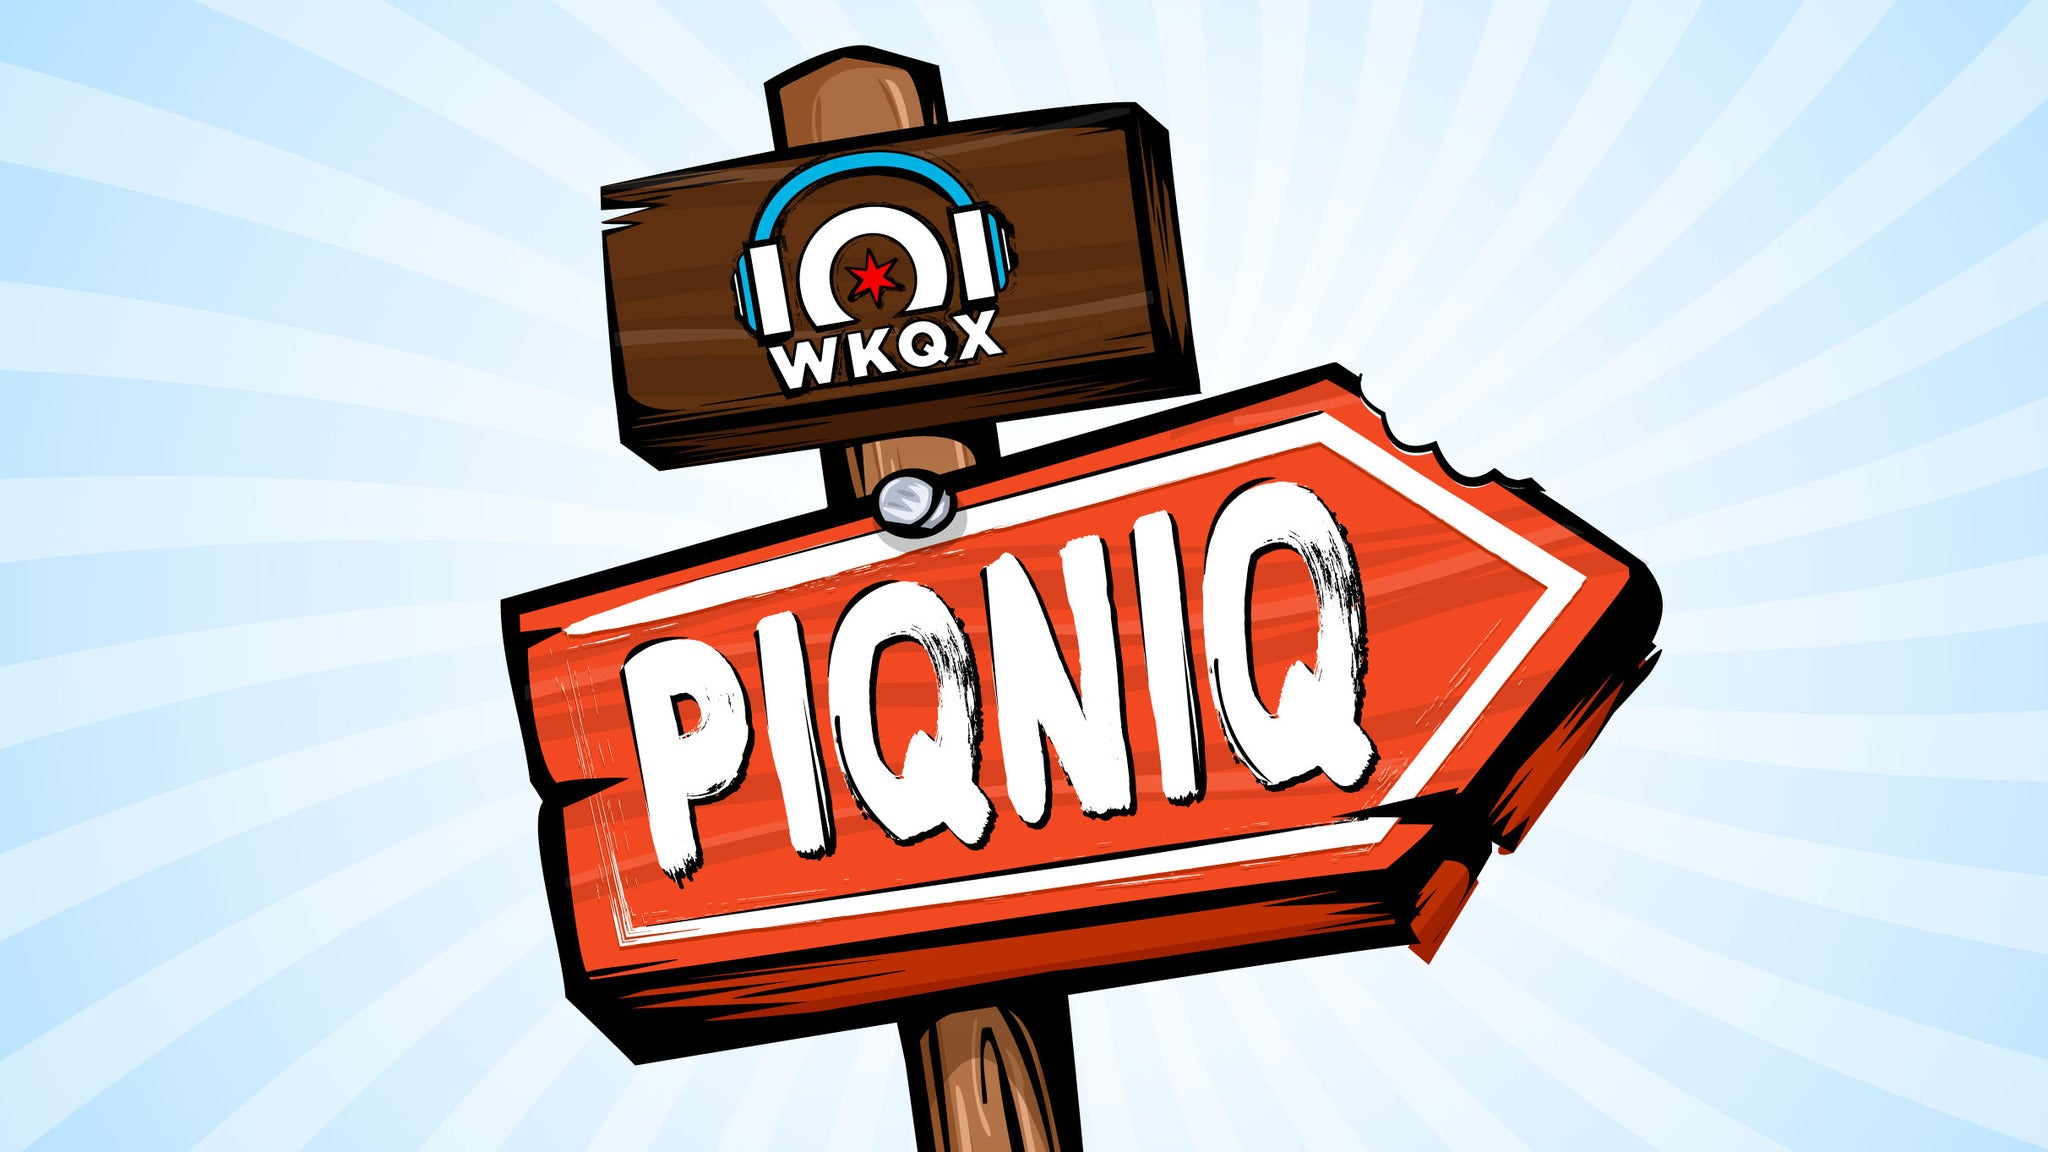 101WKQX Piqniq:  Foster The People and more!